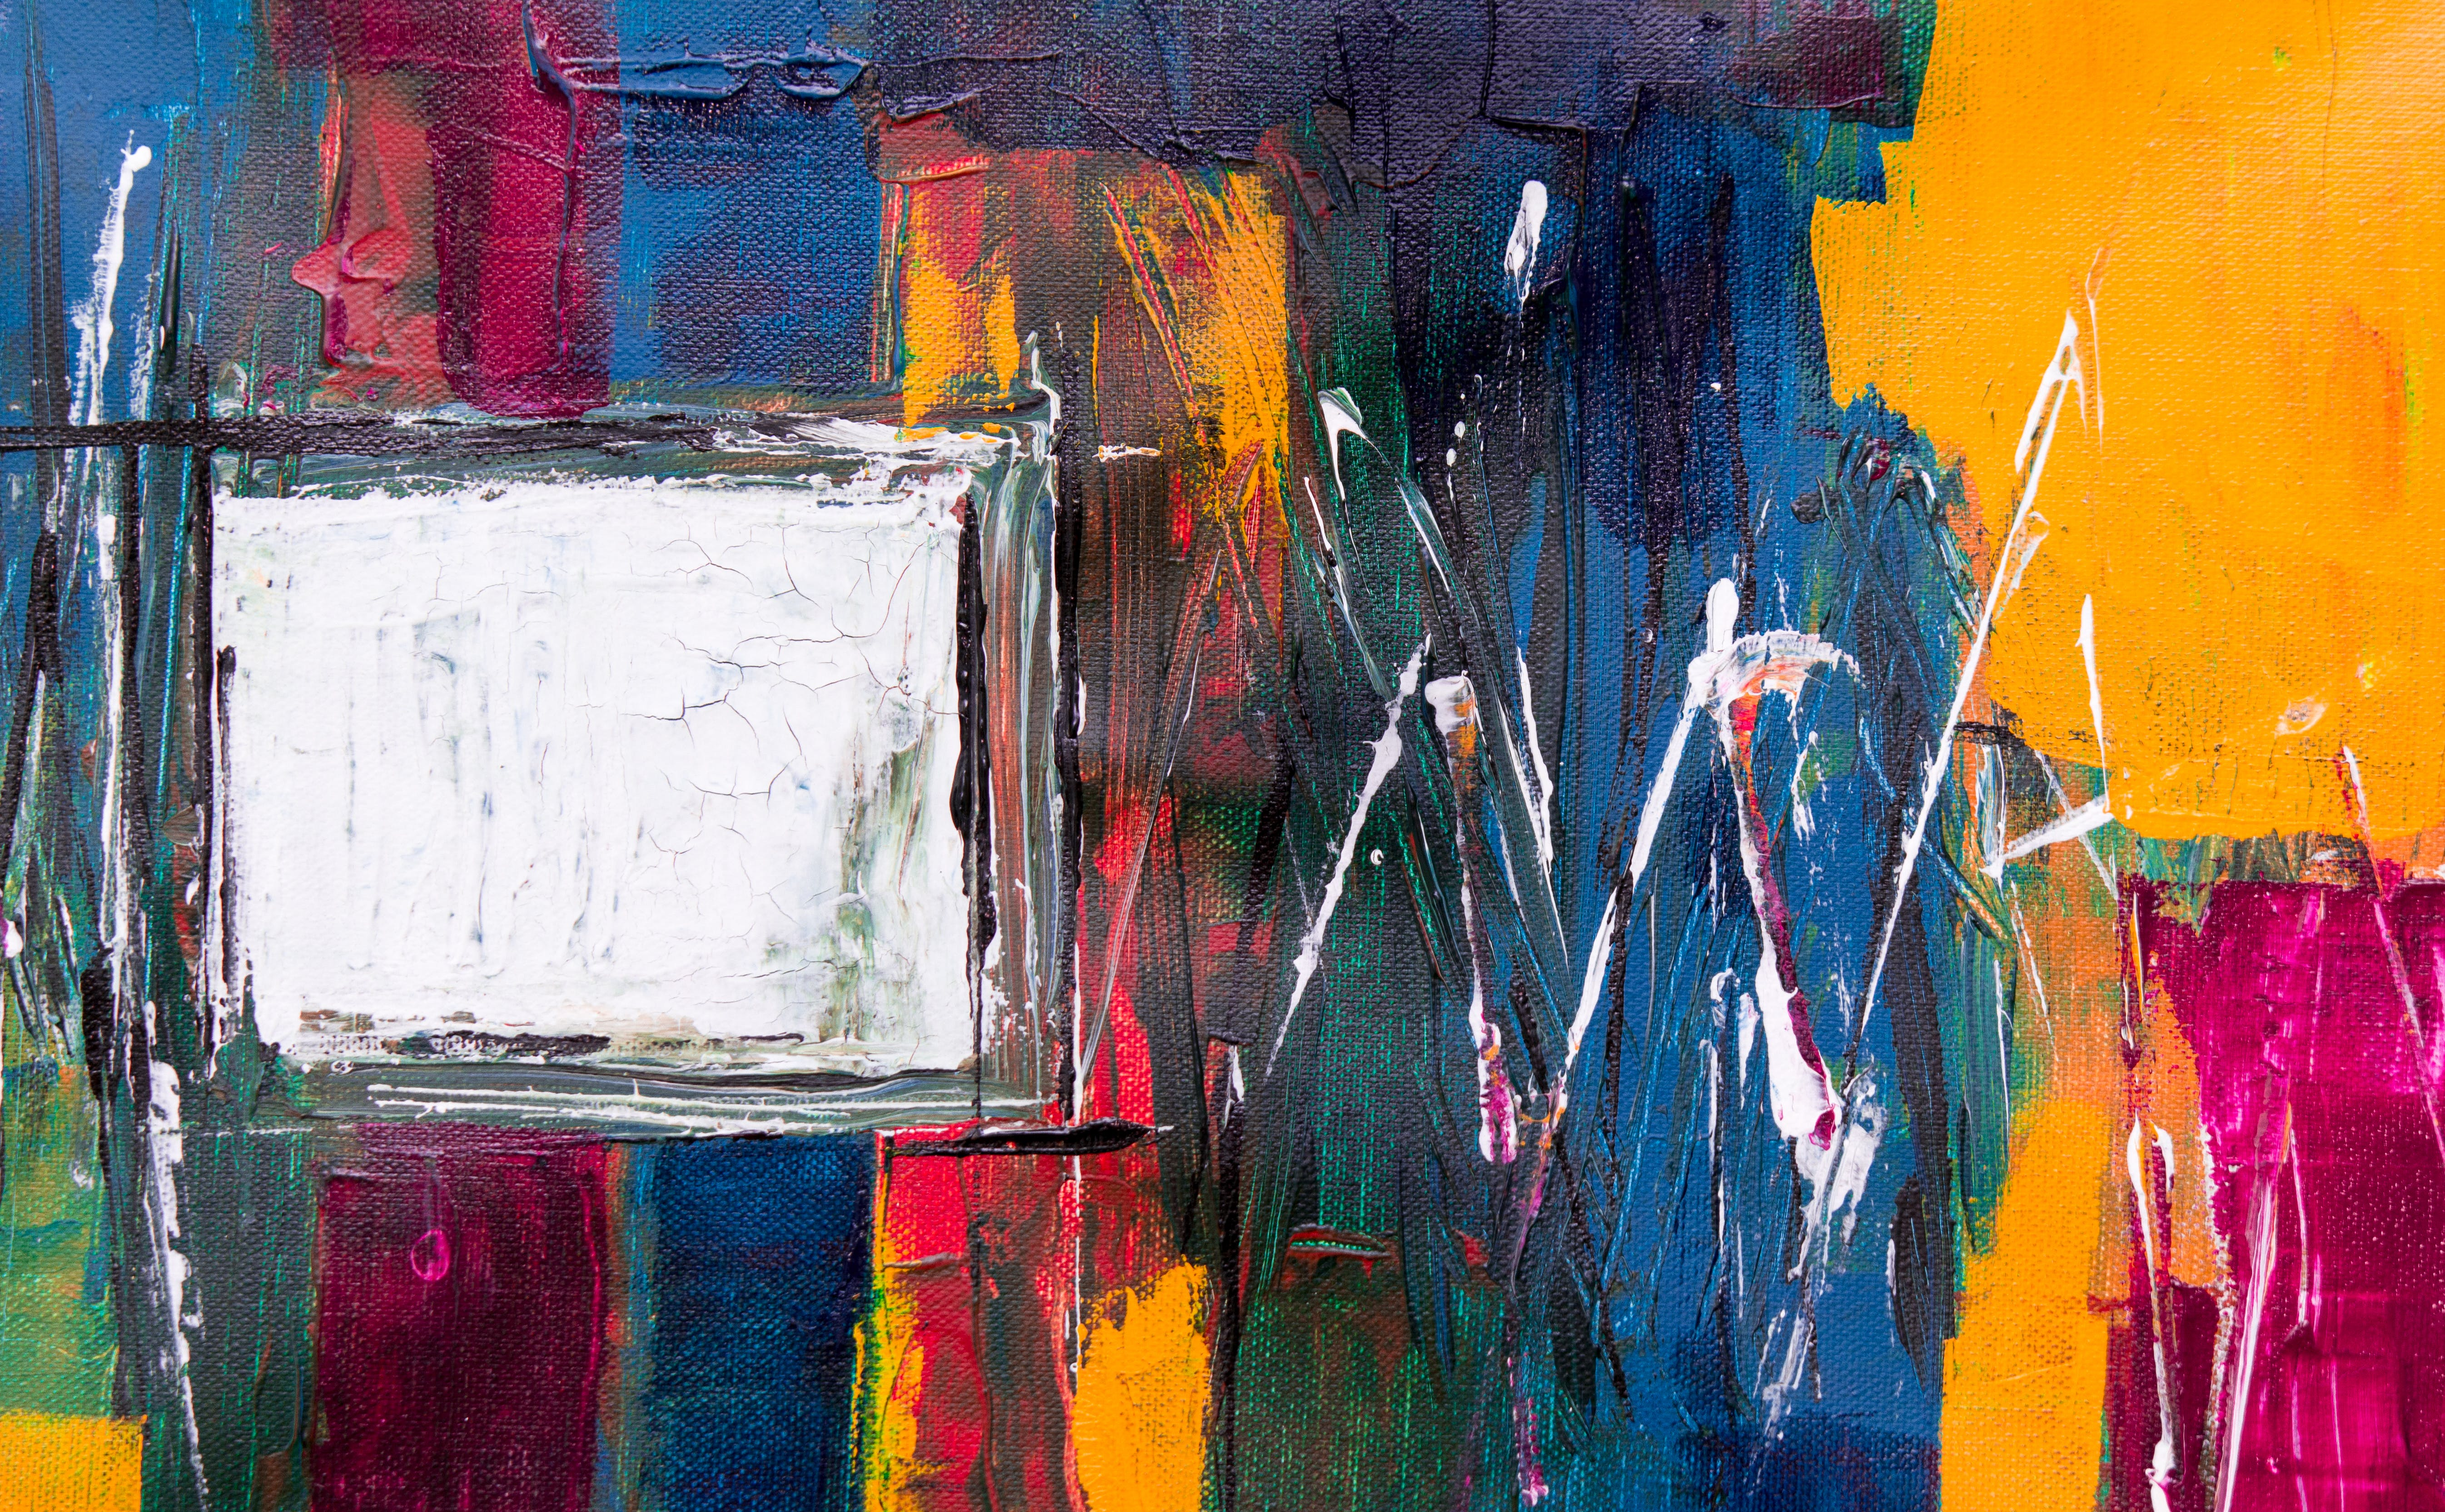 Blue, Red, and White Abstract Painting